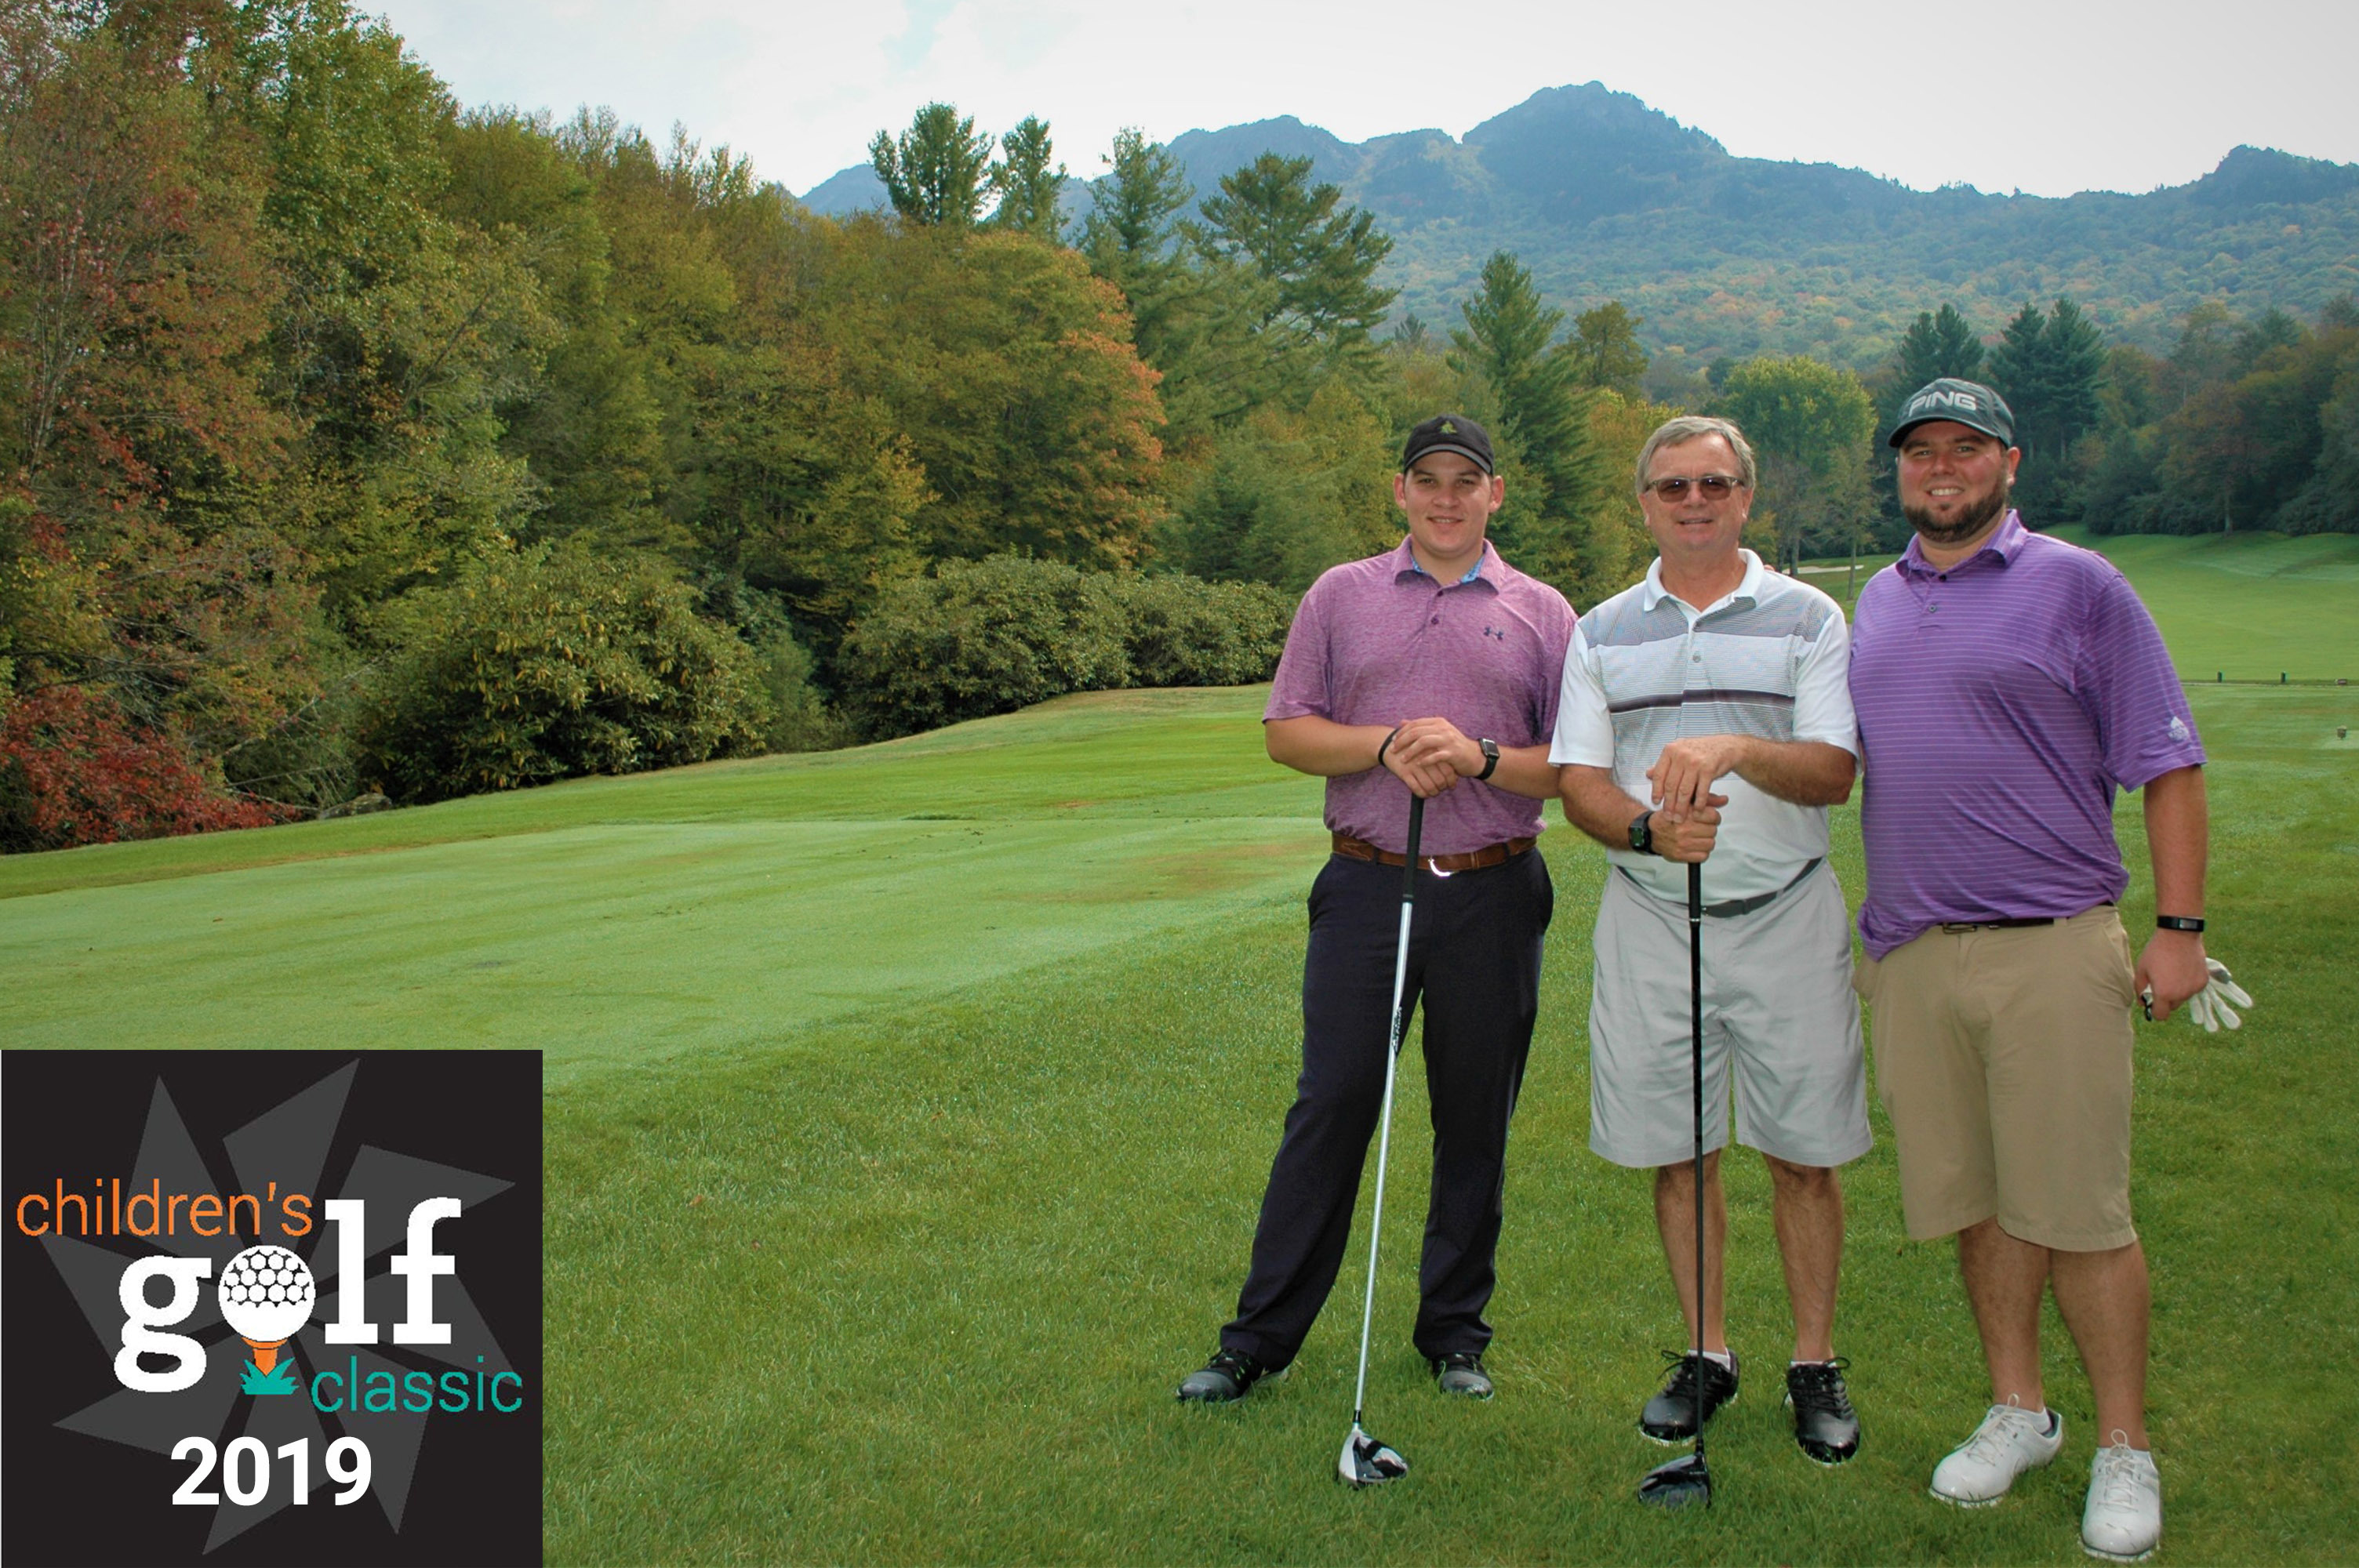 Children's Golf Classic gallery image #3